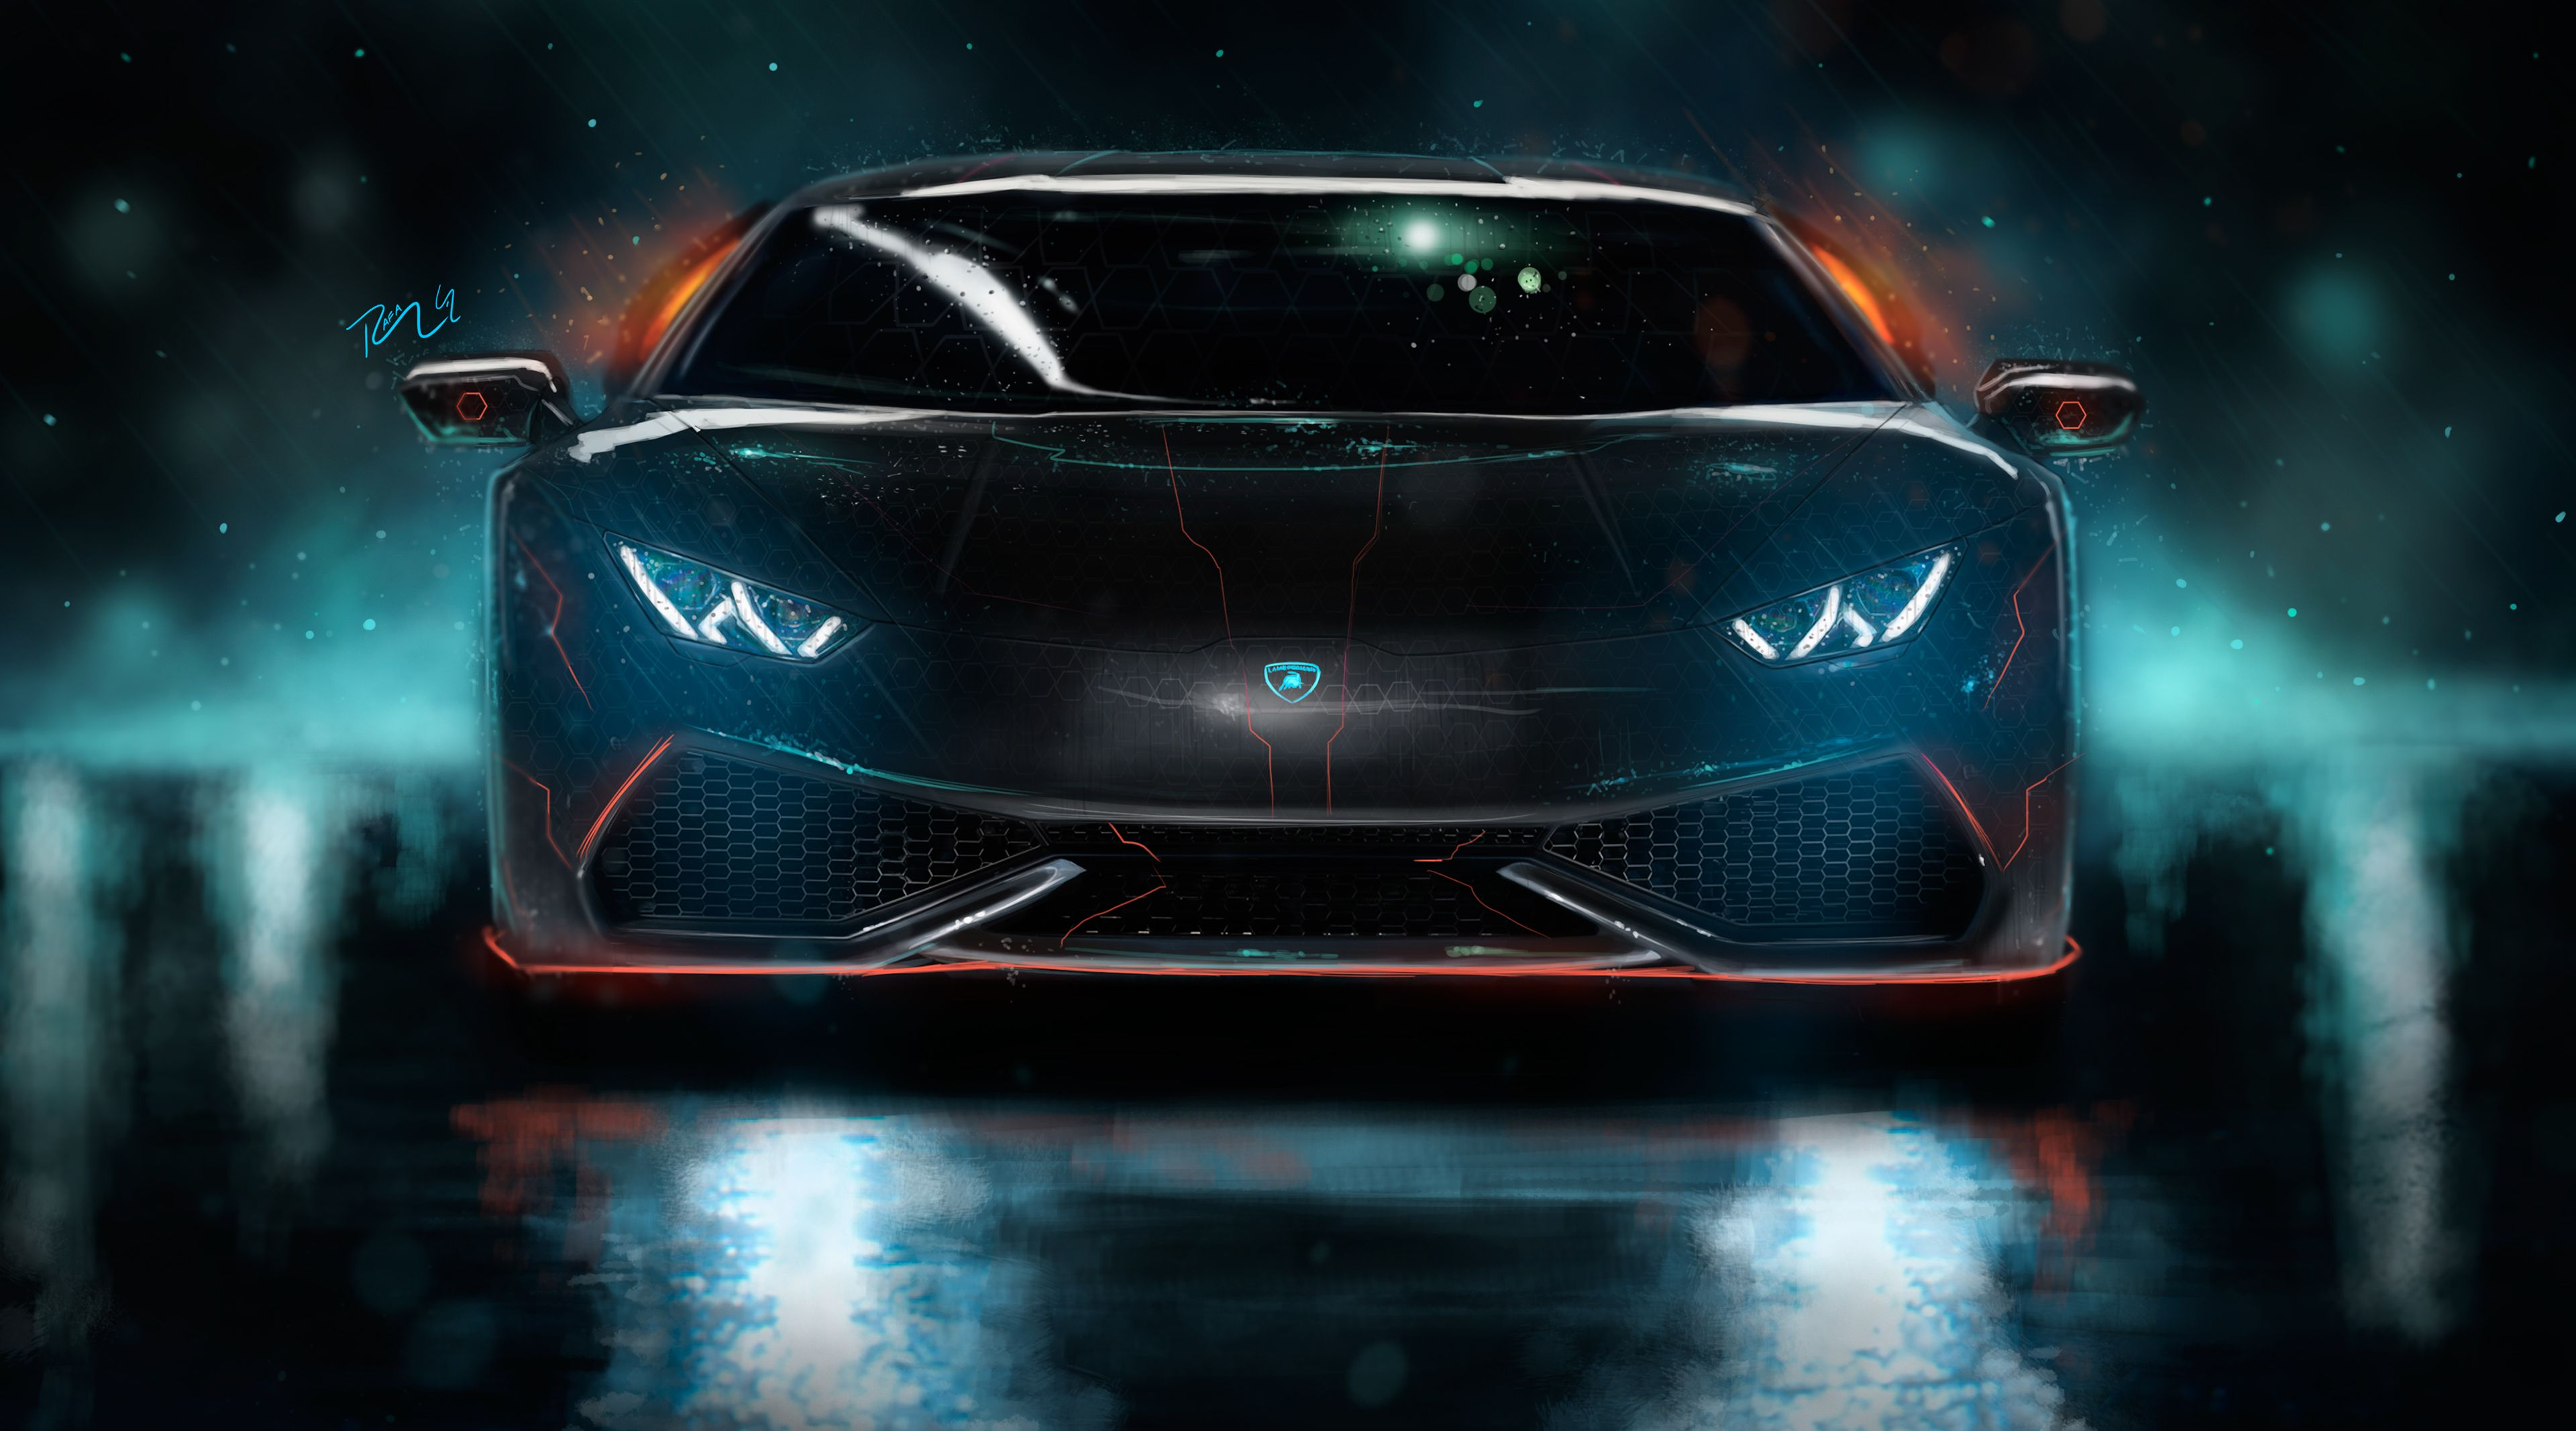 Neon Lamborghini Wallpapers Top Free Neon Lamborghini Backgrounds